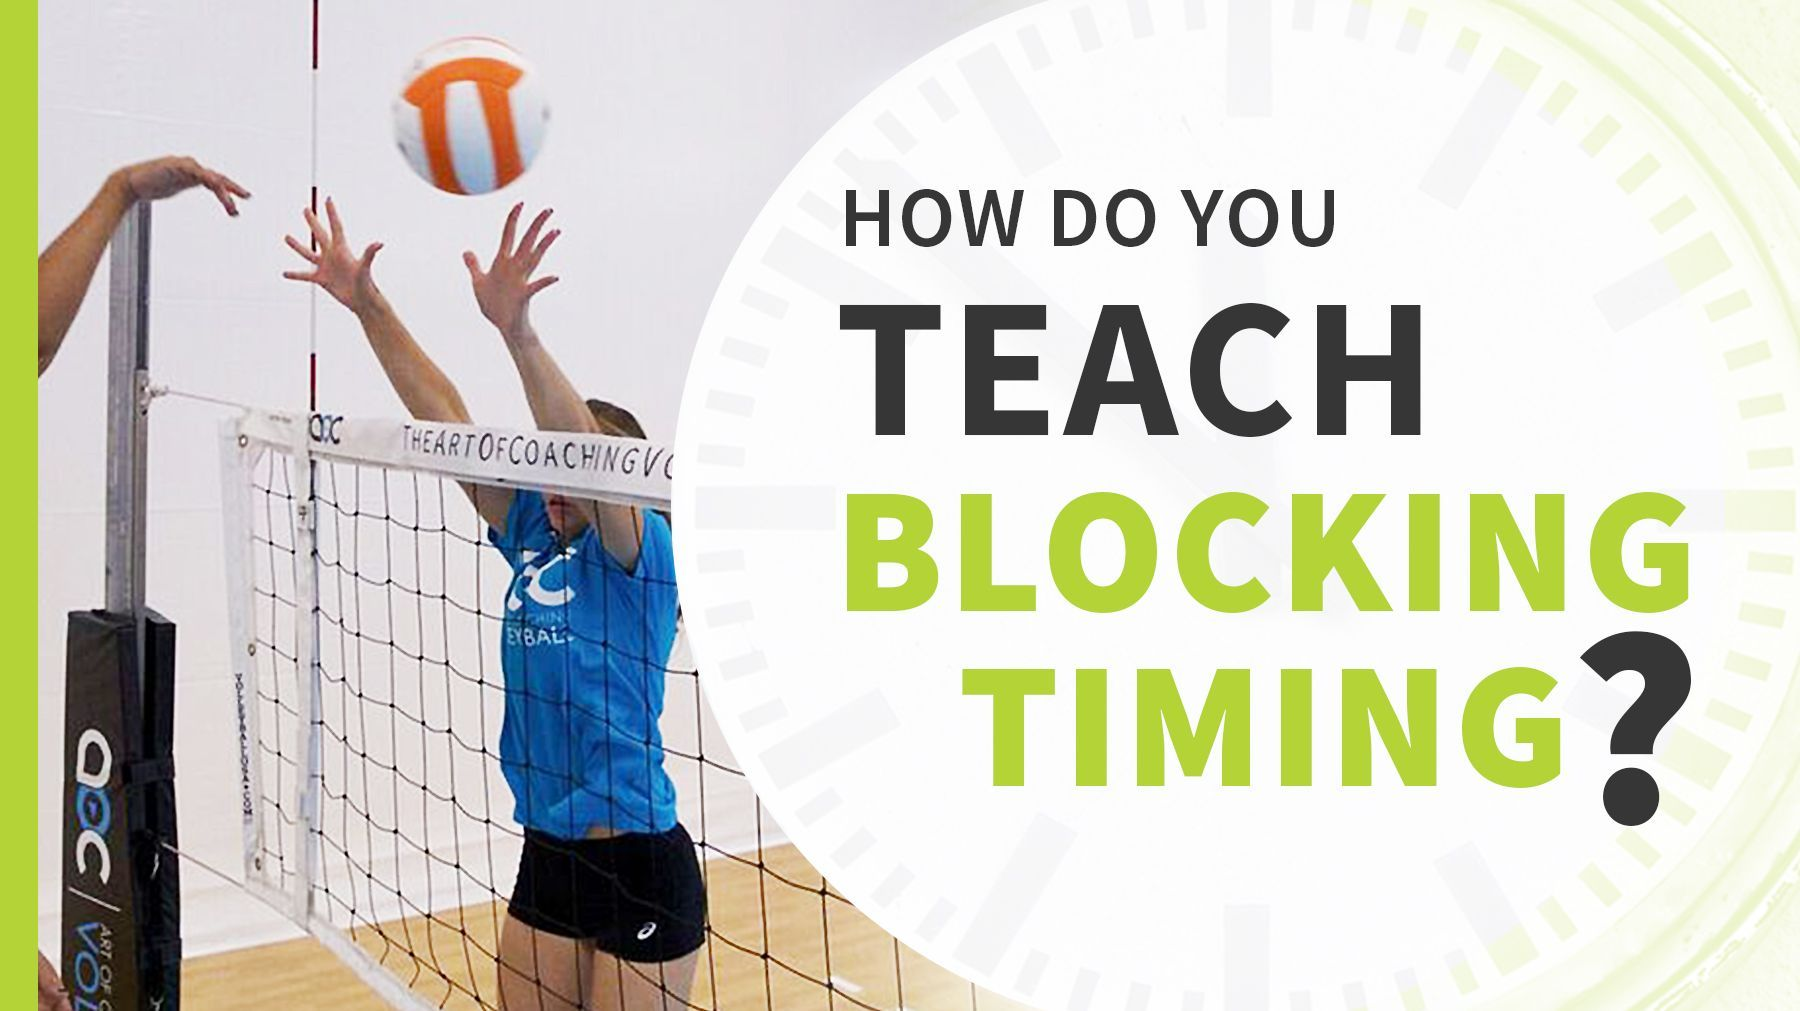 Increasing Defensive Range Drill To Teach Blocking Timing